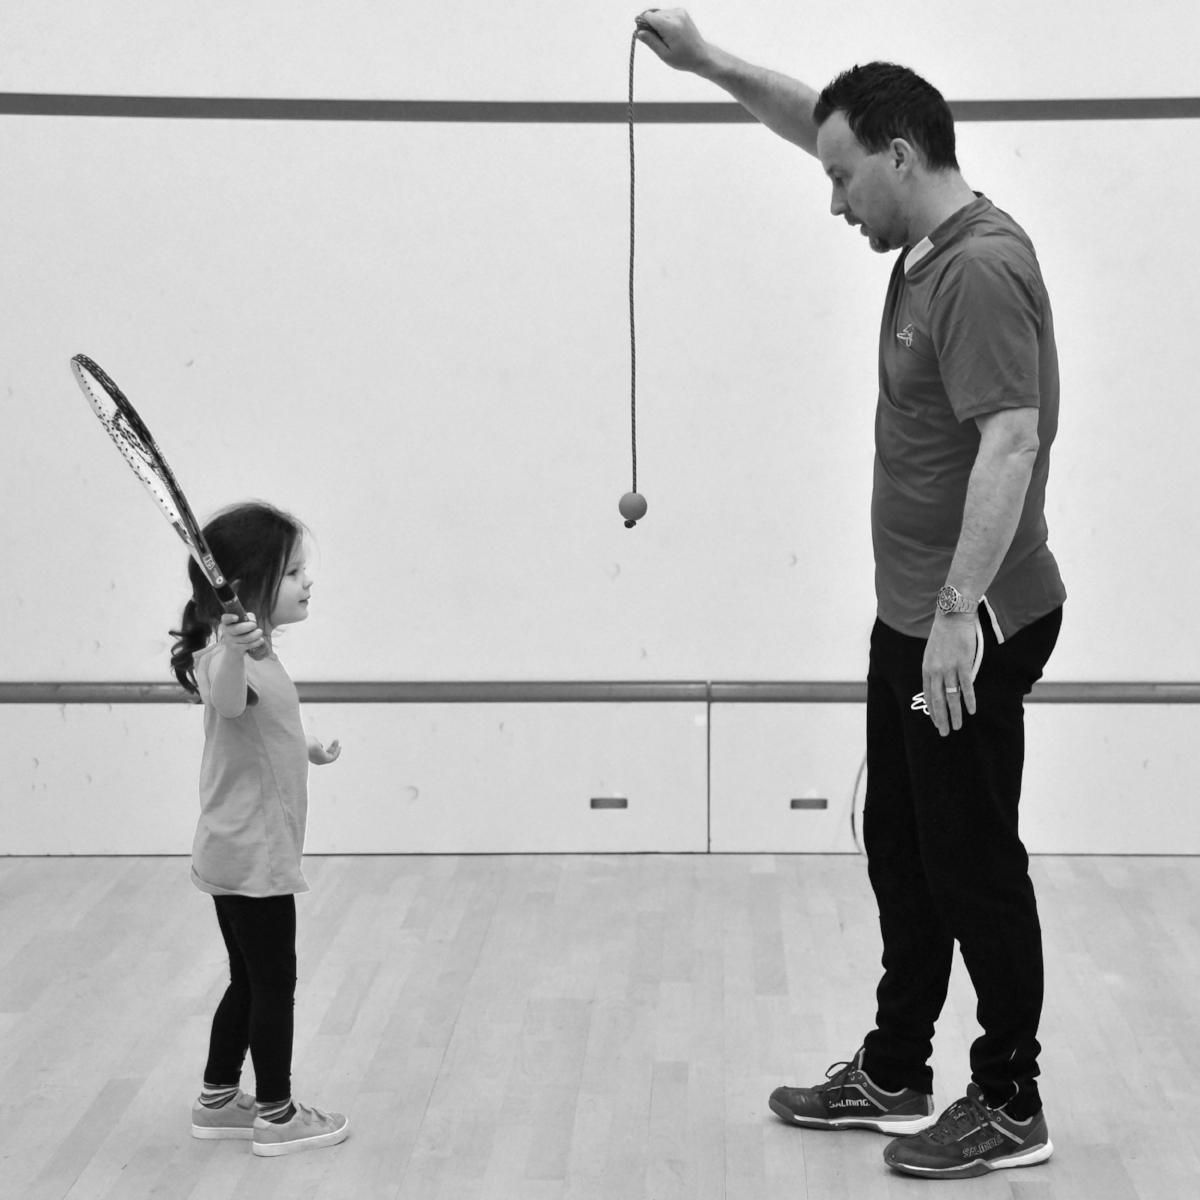 Junior squash player practicing swings with a practice squash ball